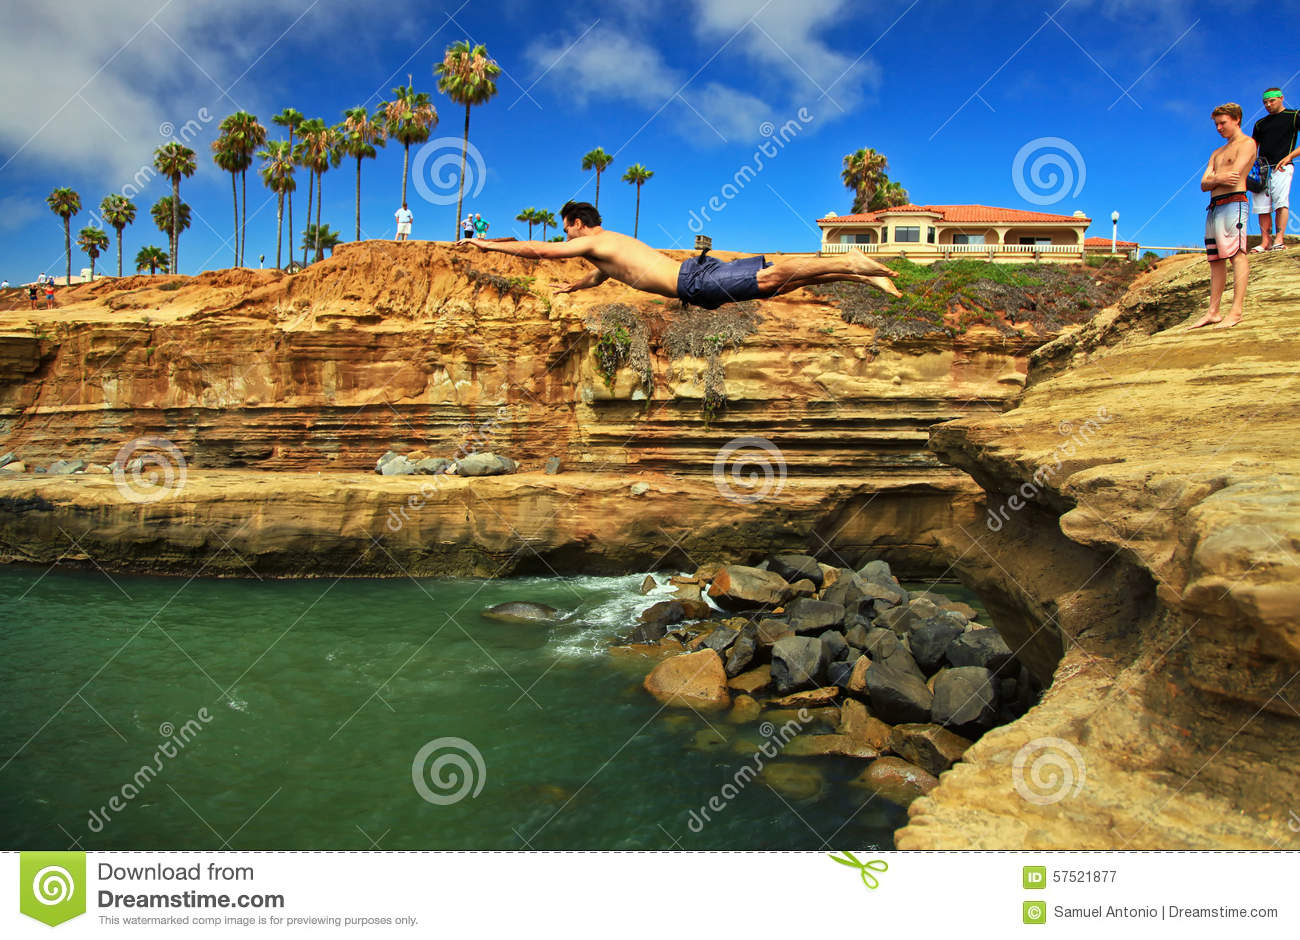 Young Man Cliff Diving Into Water, Sunset Cliffs, Point Loma, San